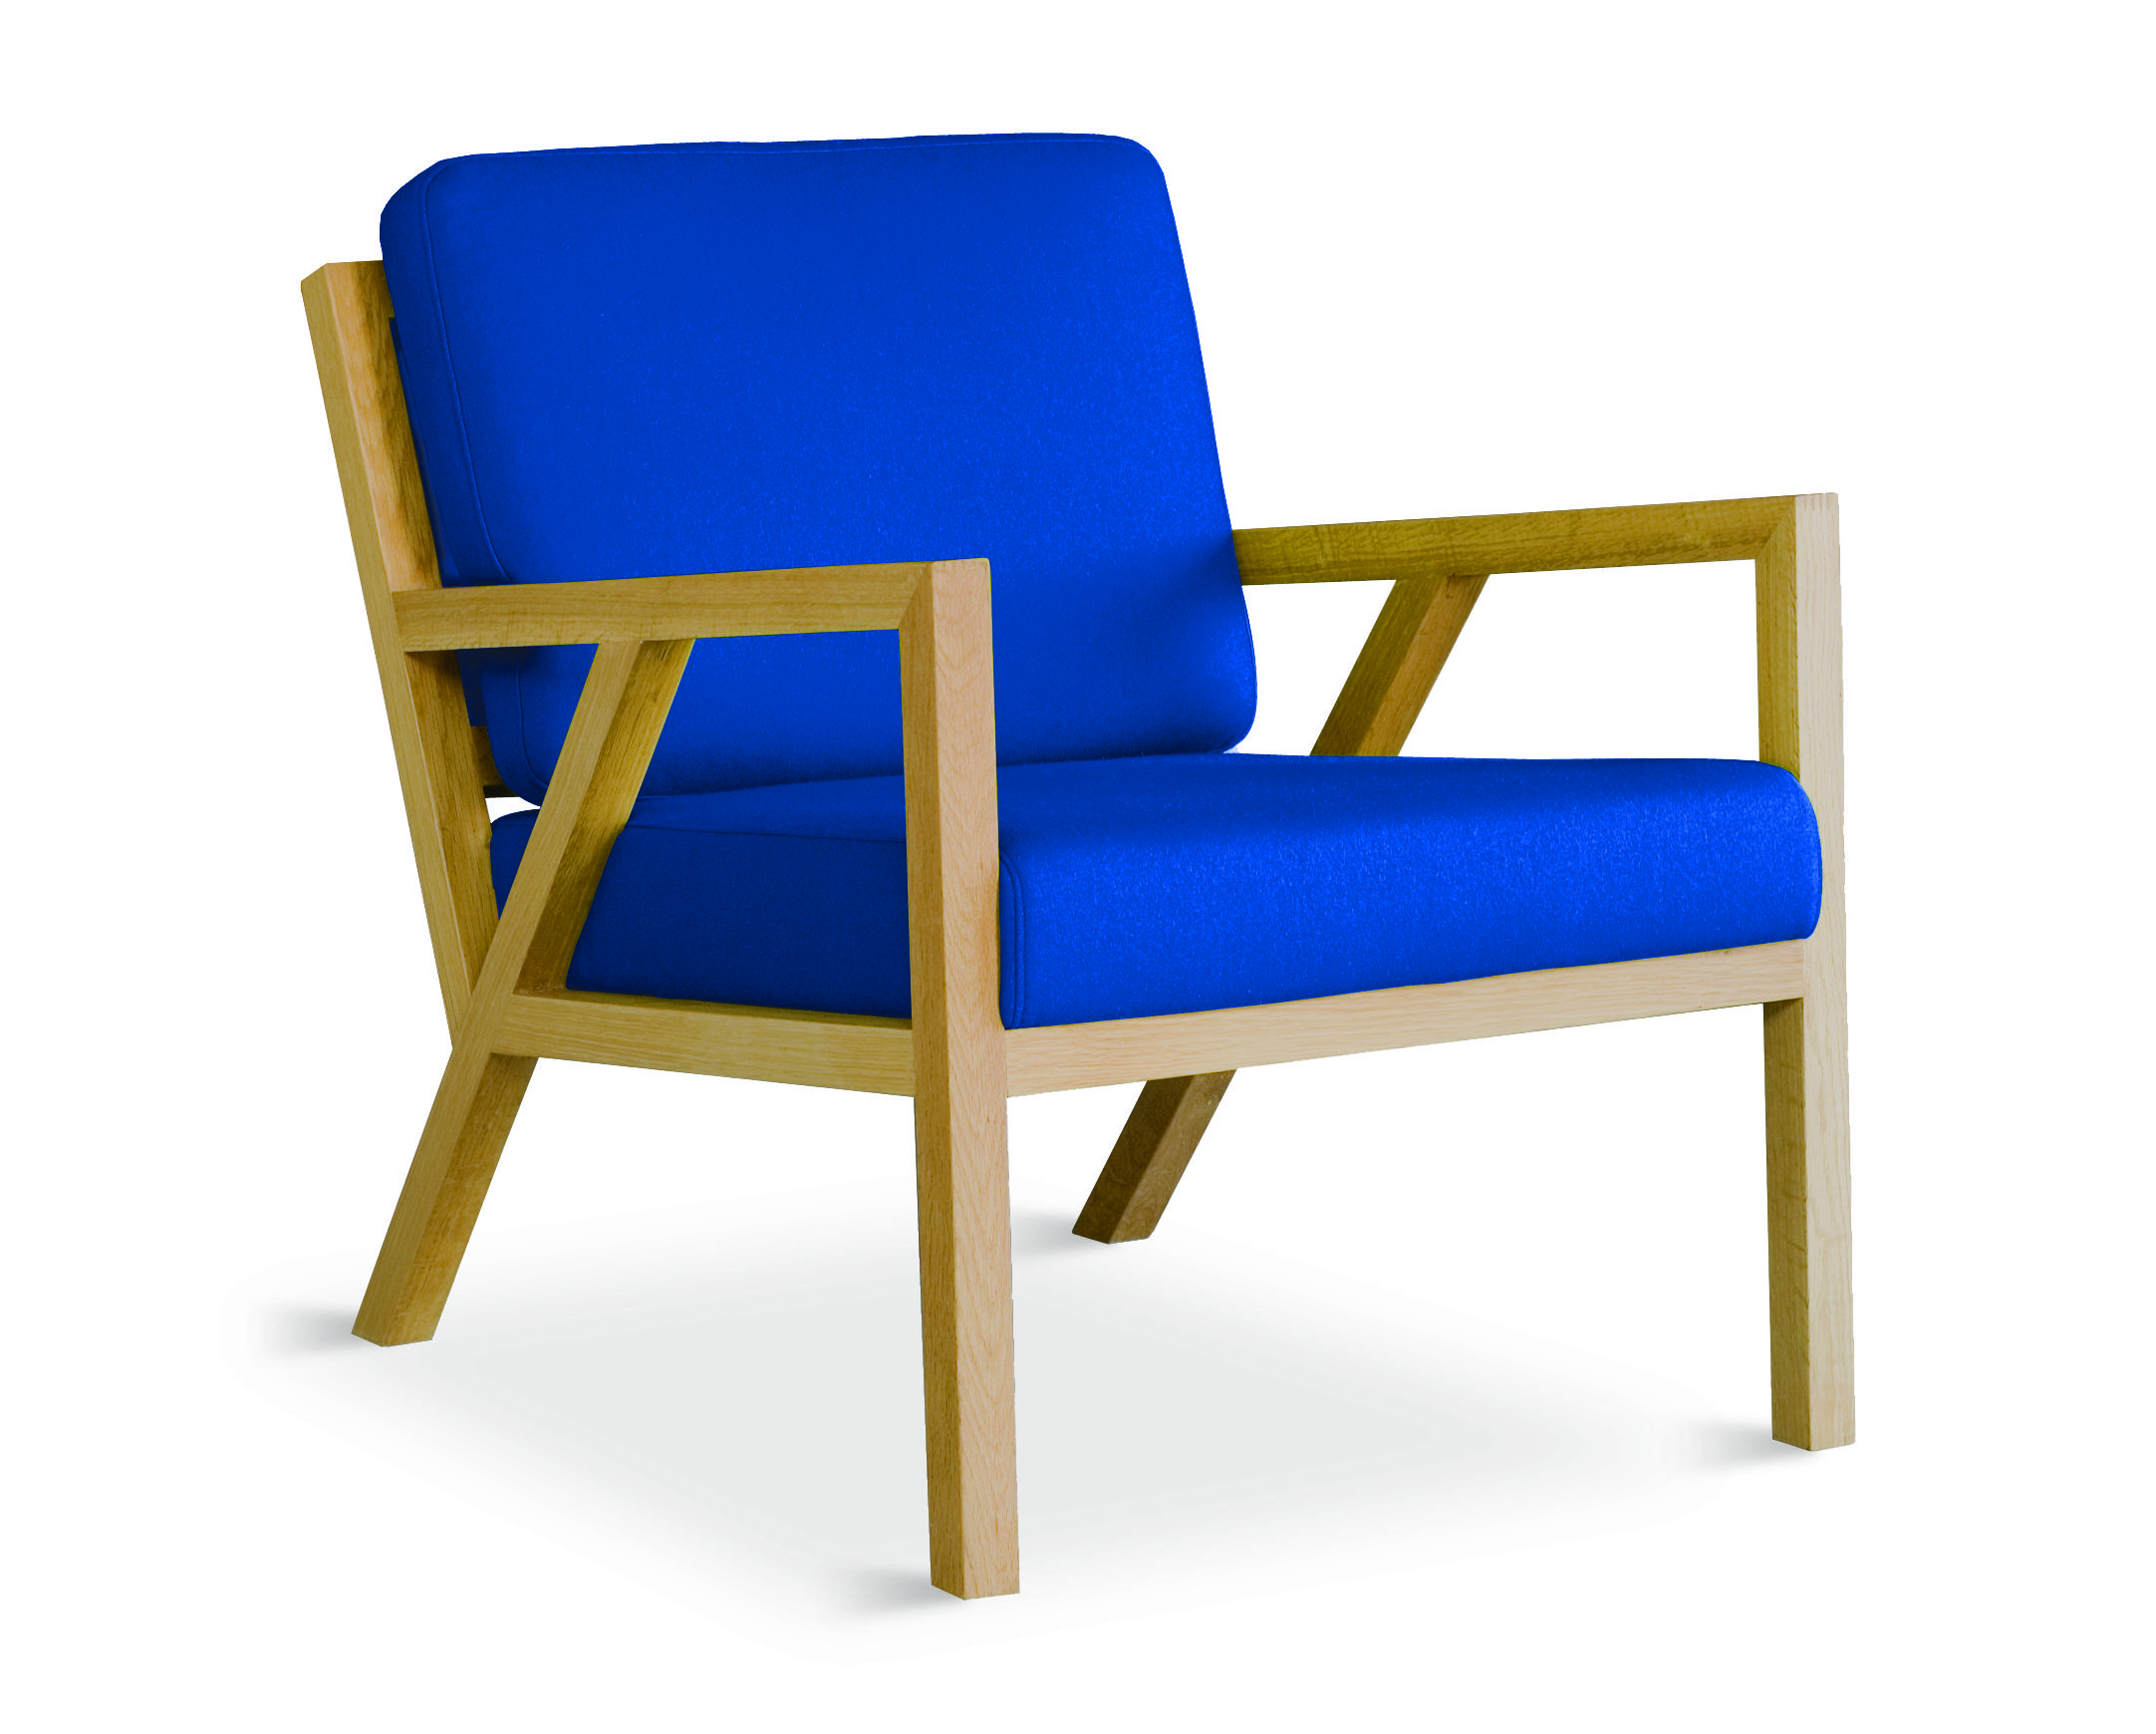 Gus* Modern | Truss Chair In Billiards Electric Blue Http://www.